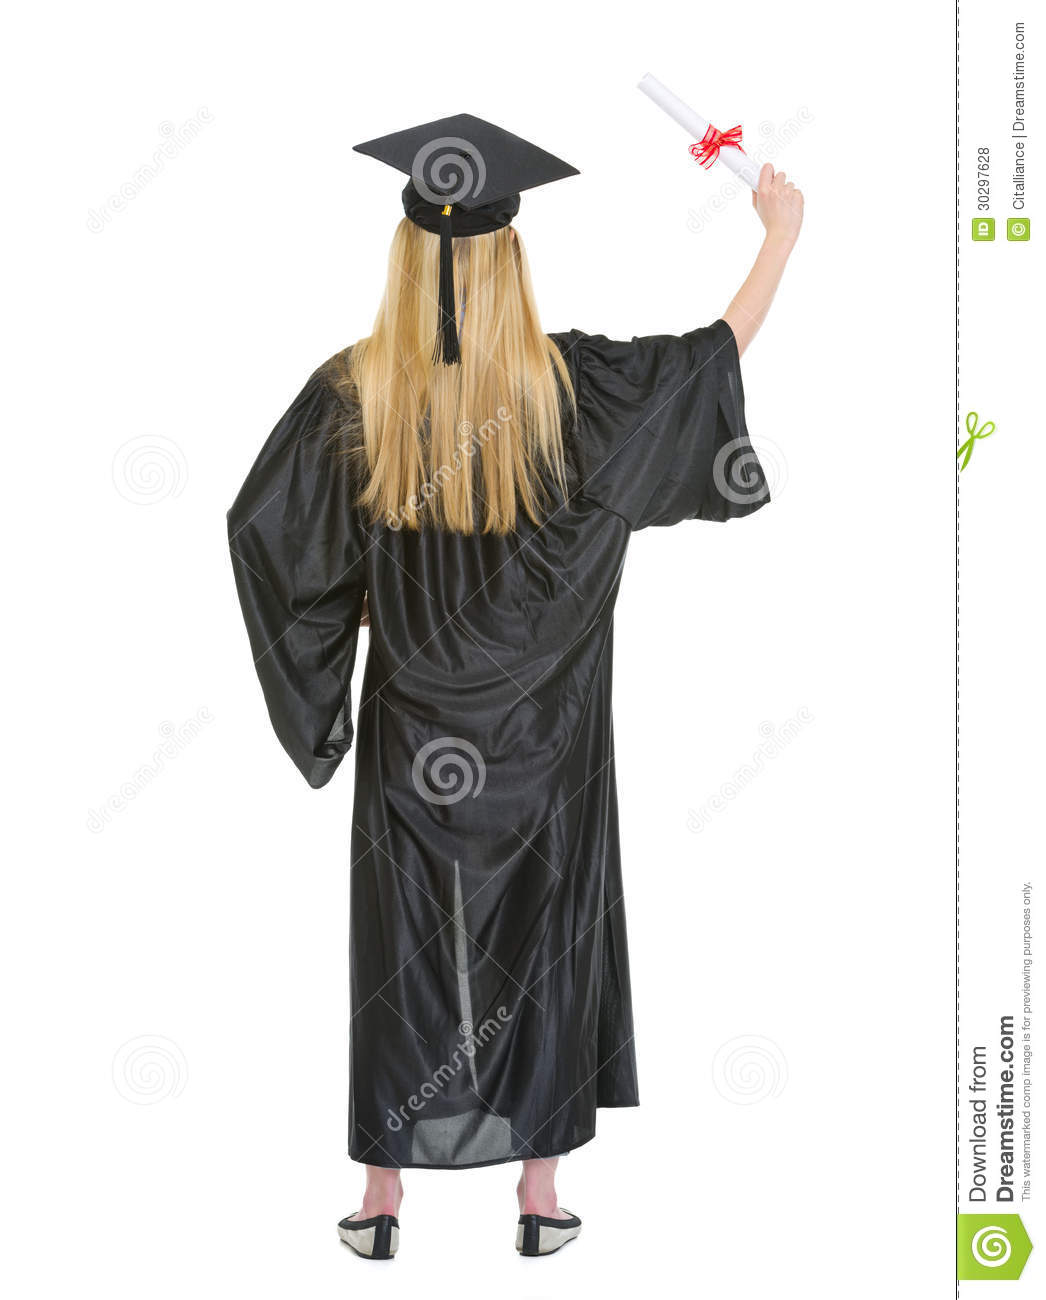 Full Length Portrait Of Woman In Graduation Gown Royalty Free ...